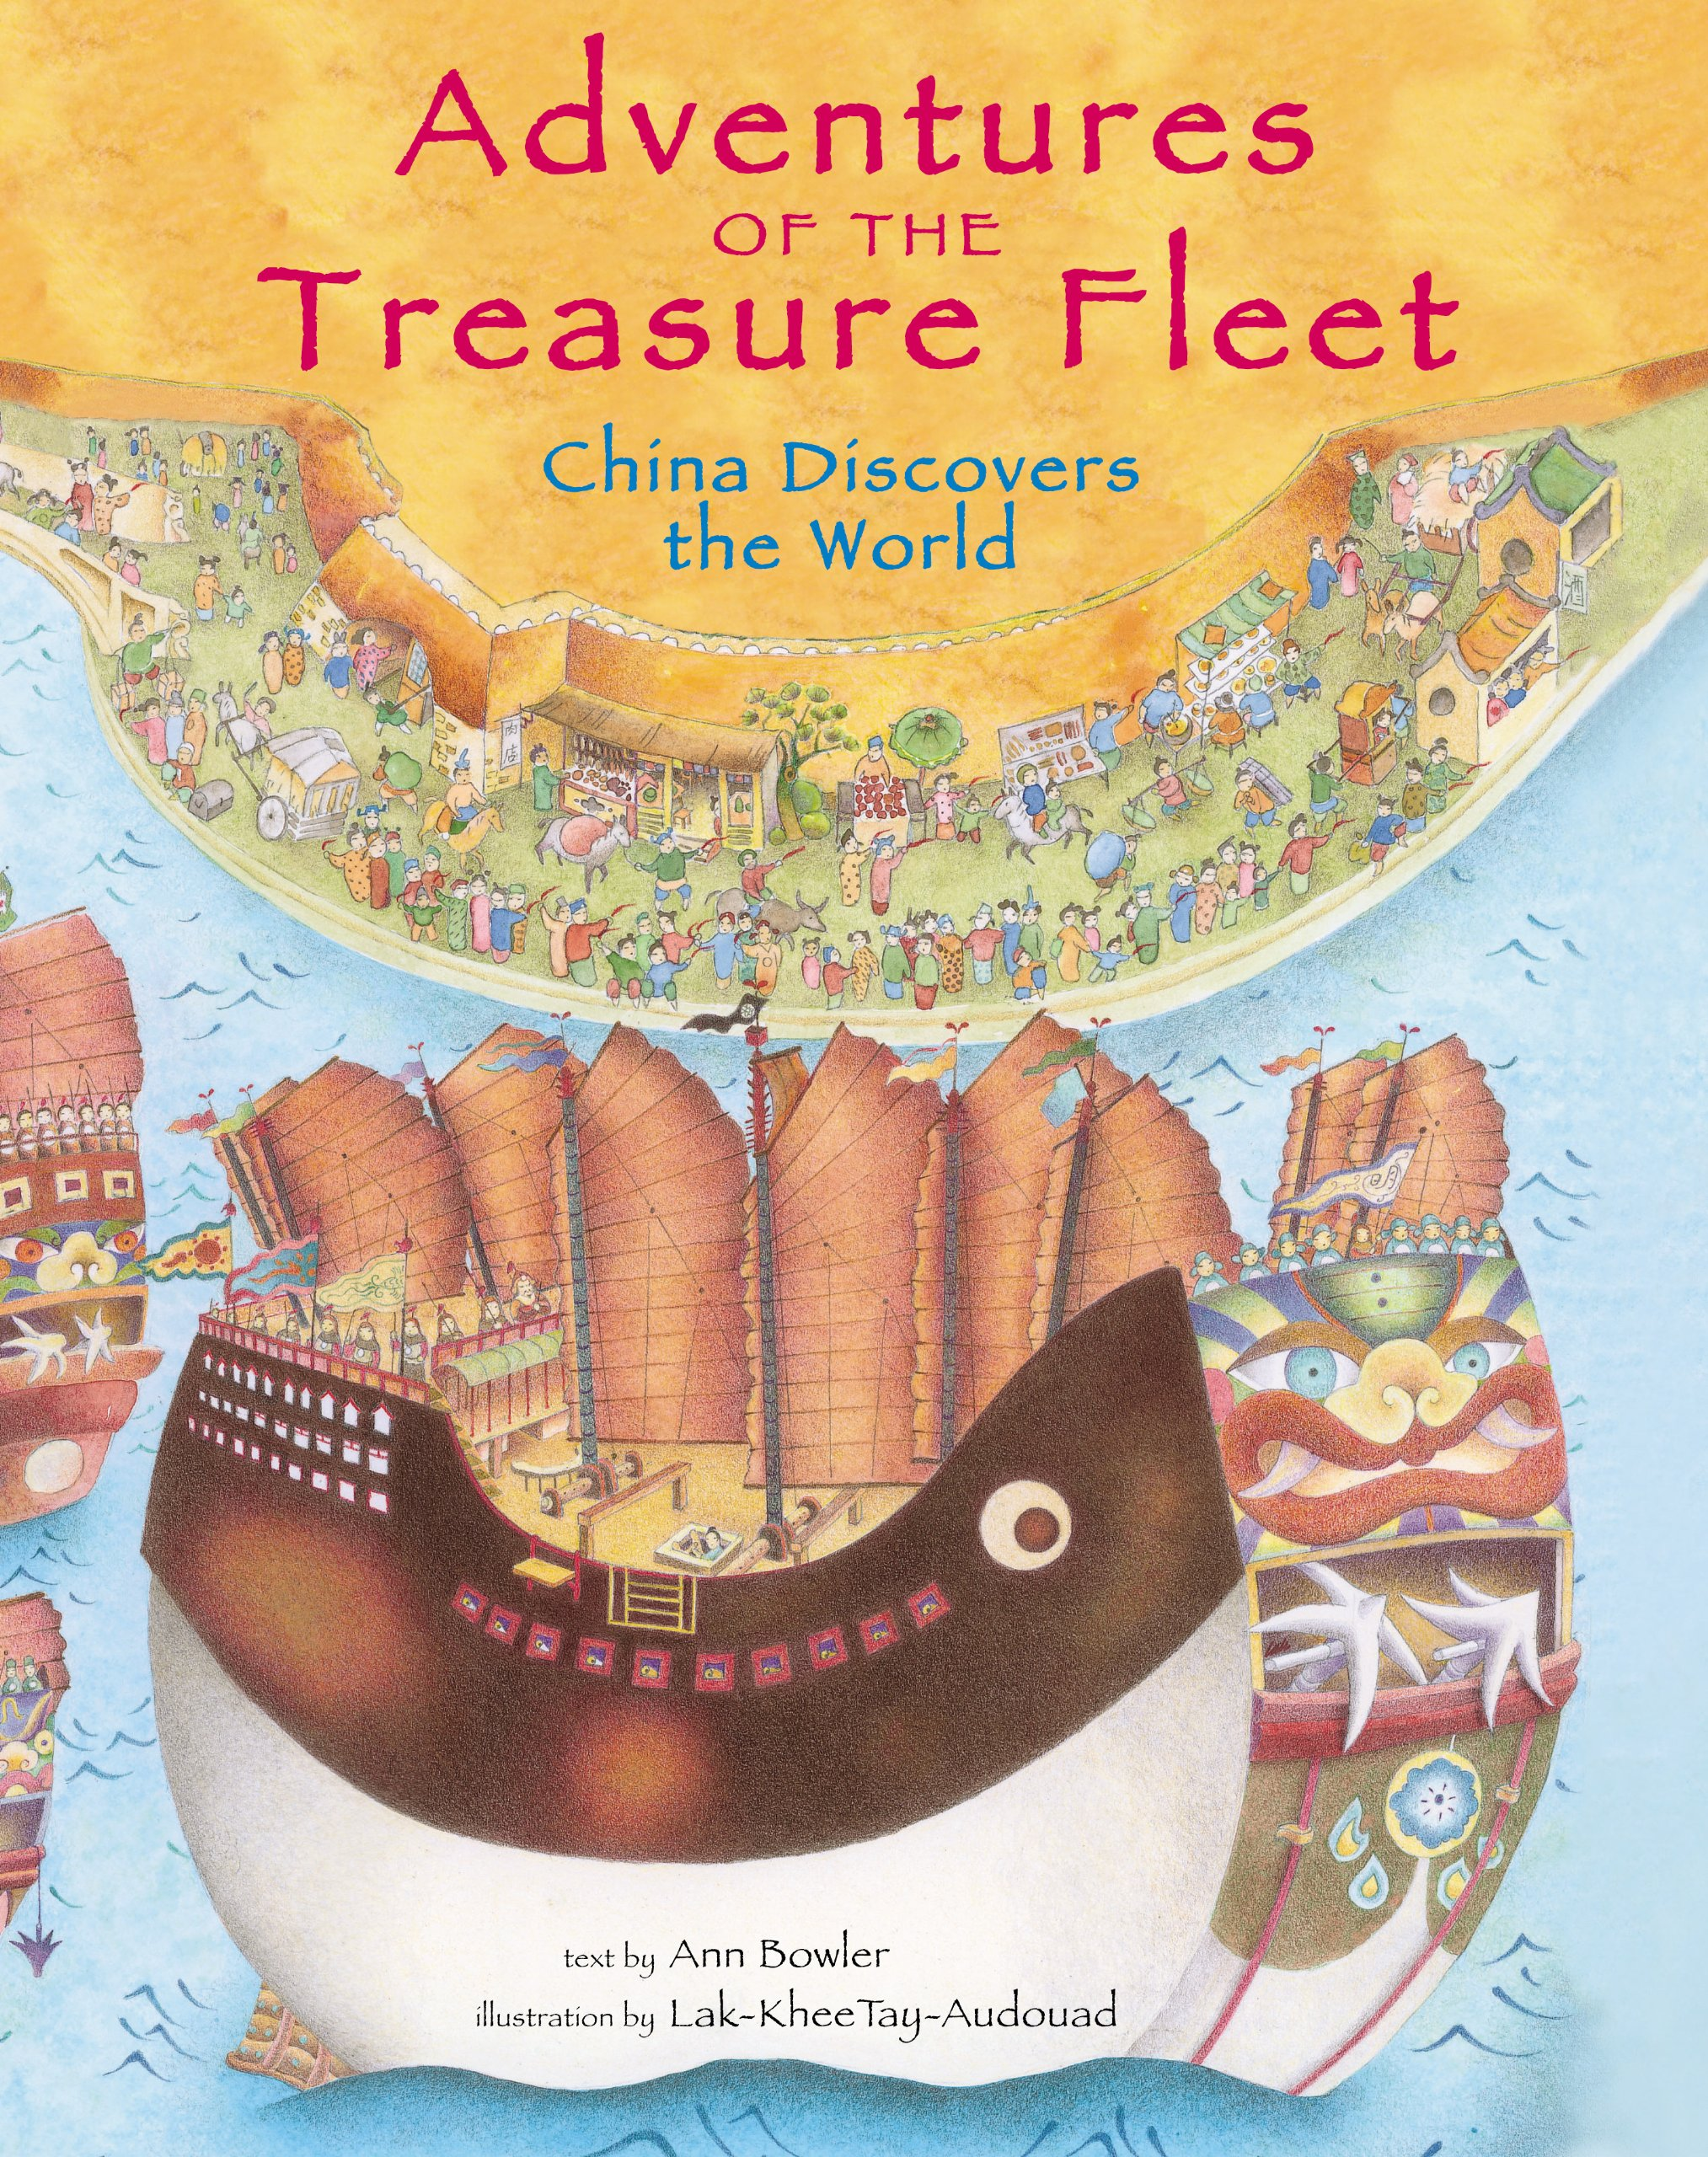 Adventures of the Treasure Fleet: China Discovers the World